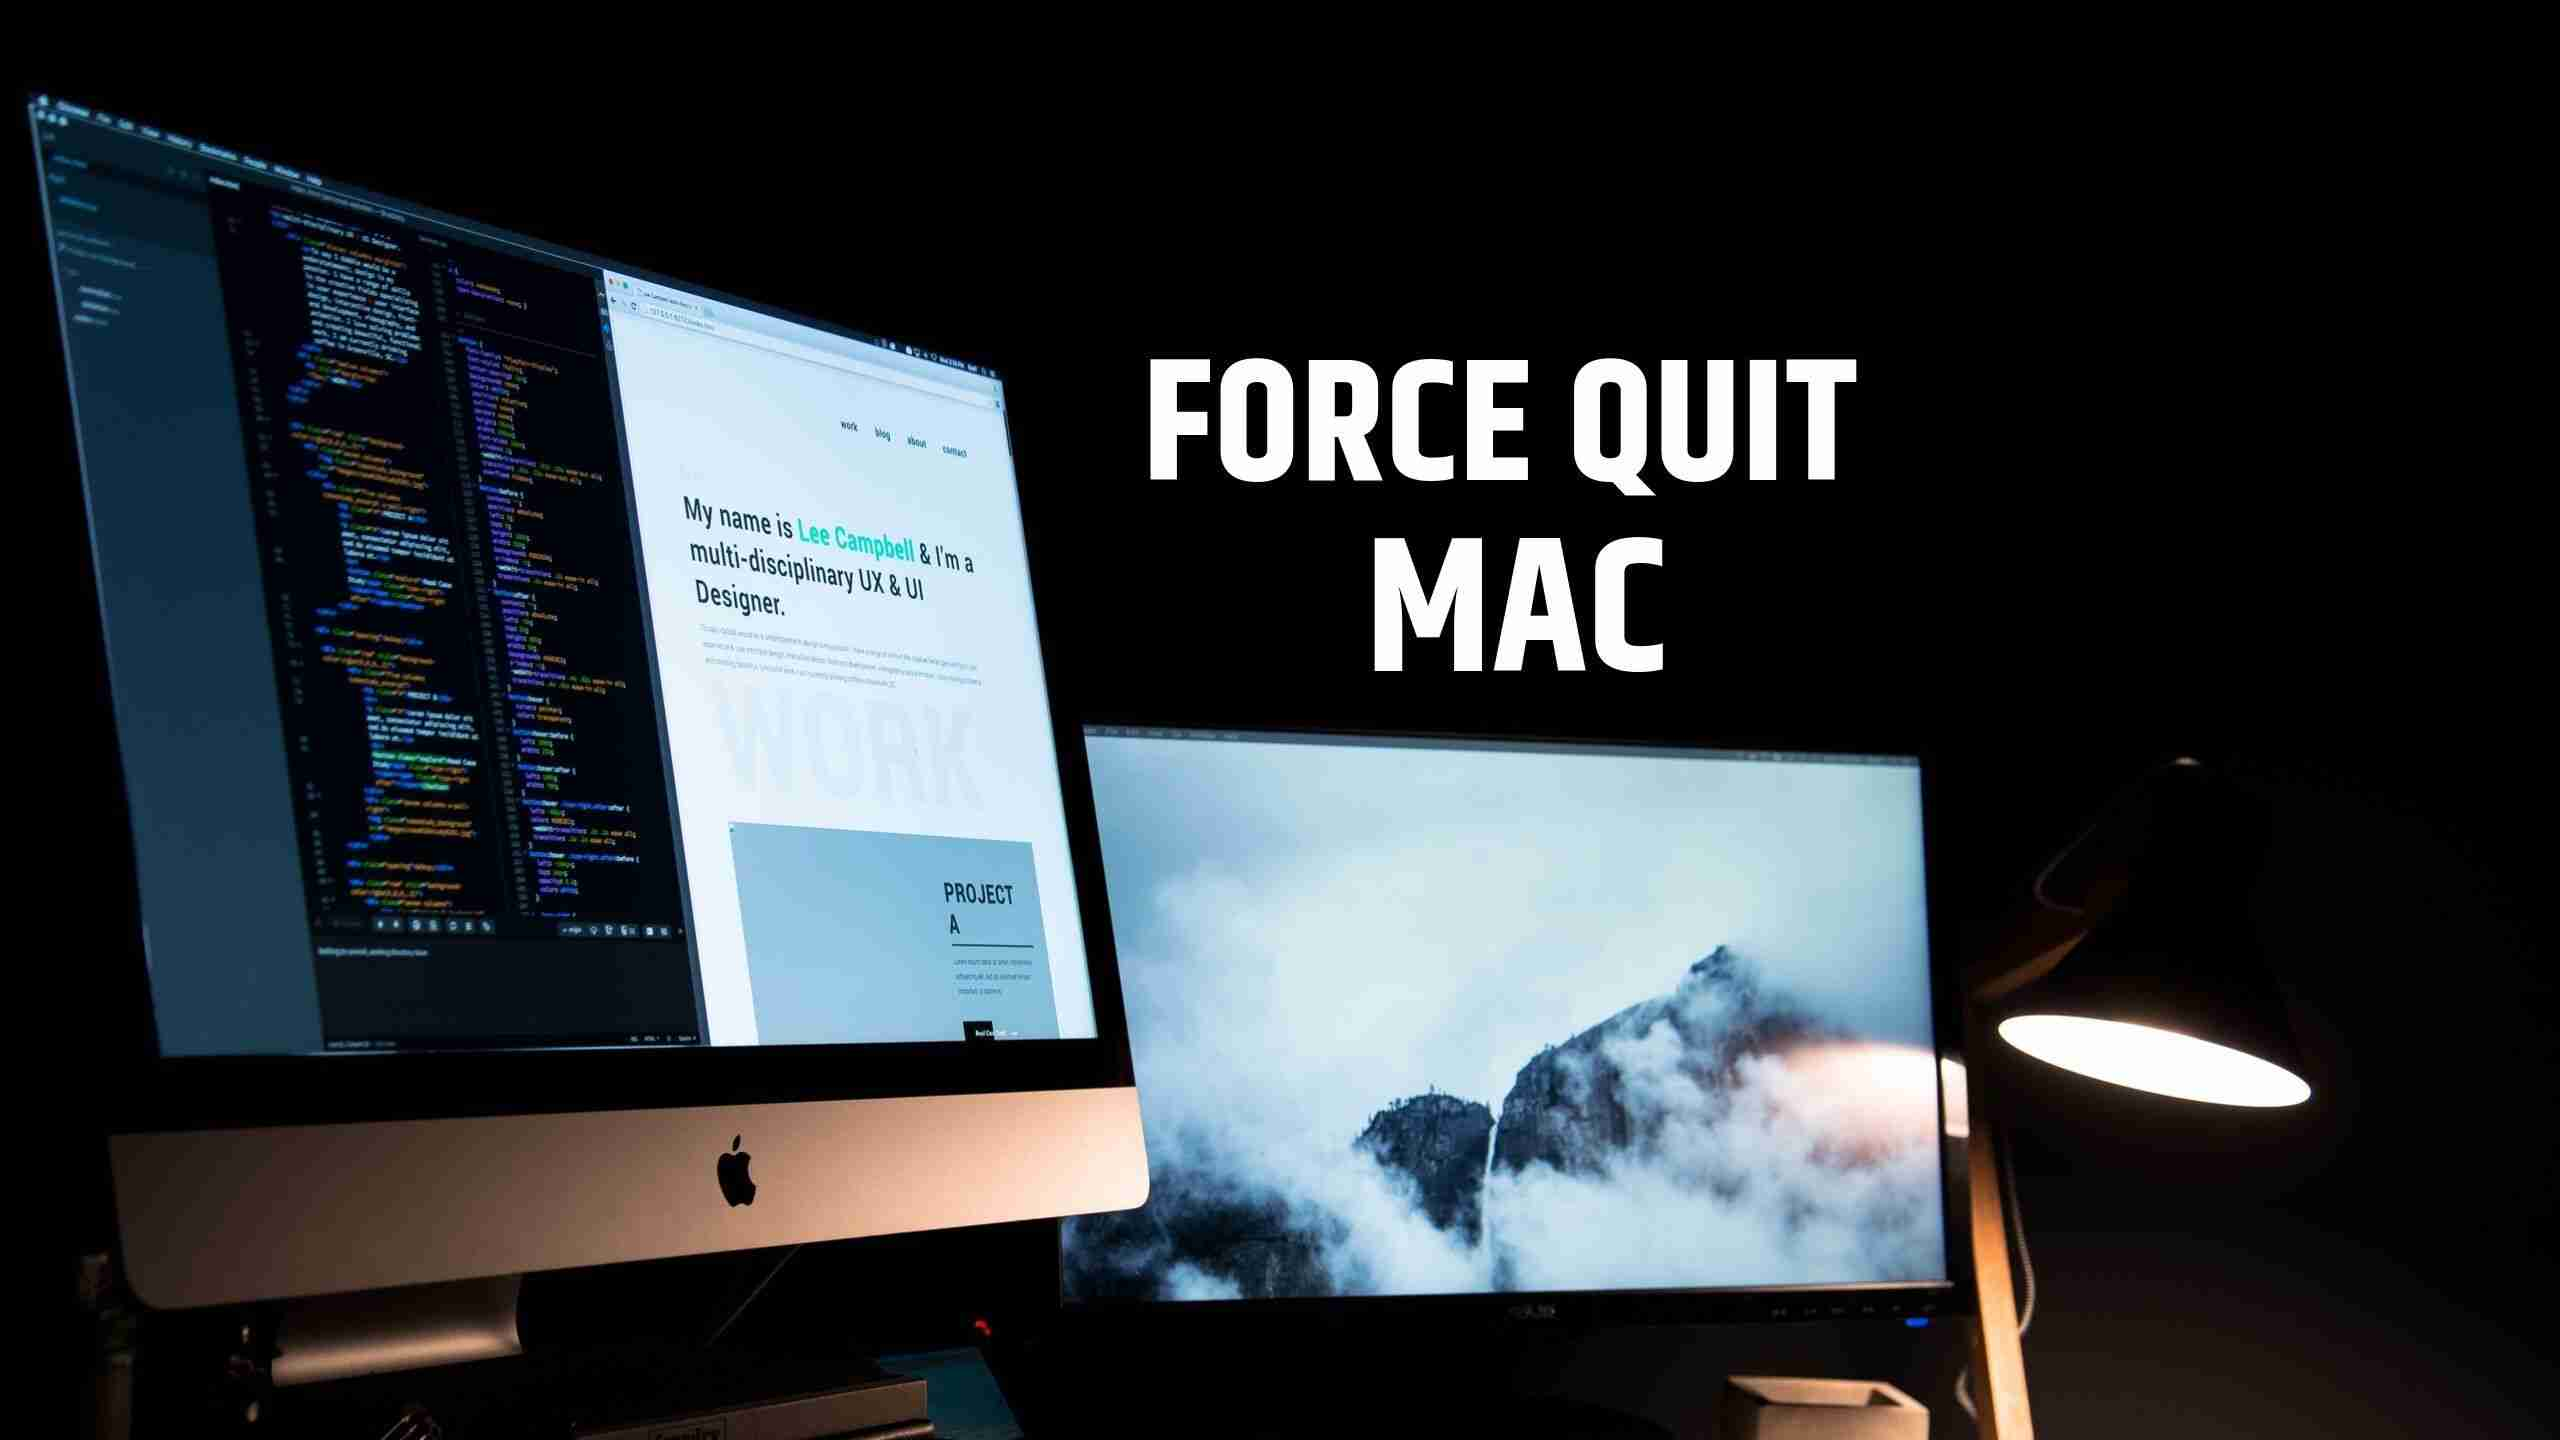 Force Quit Mac